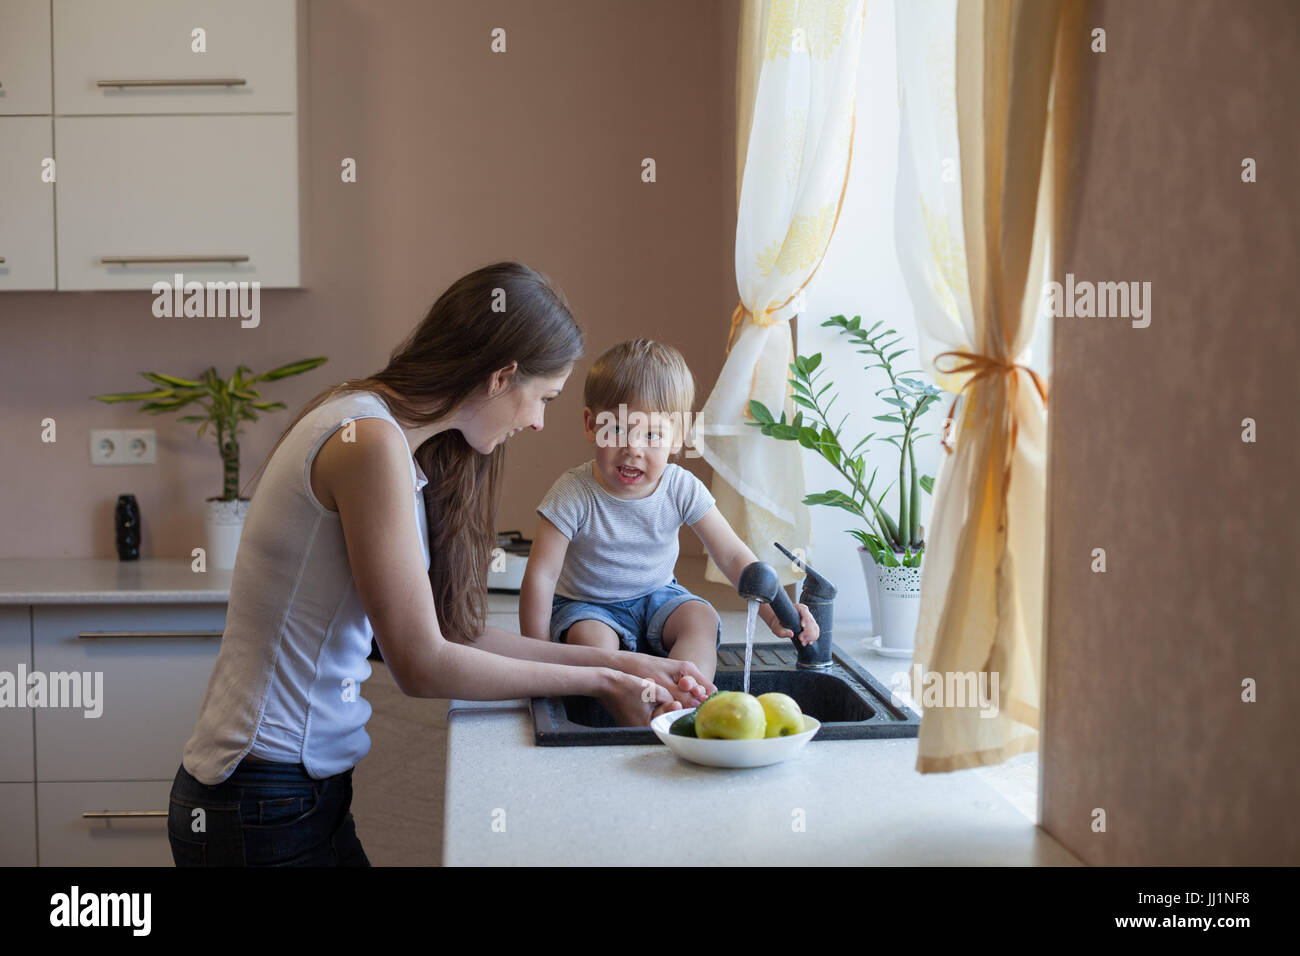 kitchen mom son wash fruits and vegetables - Stock Image